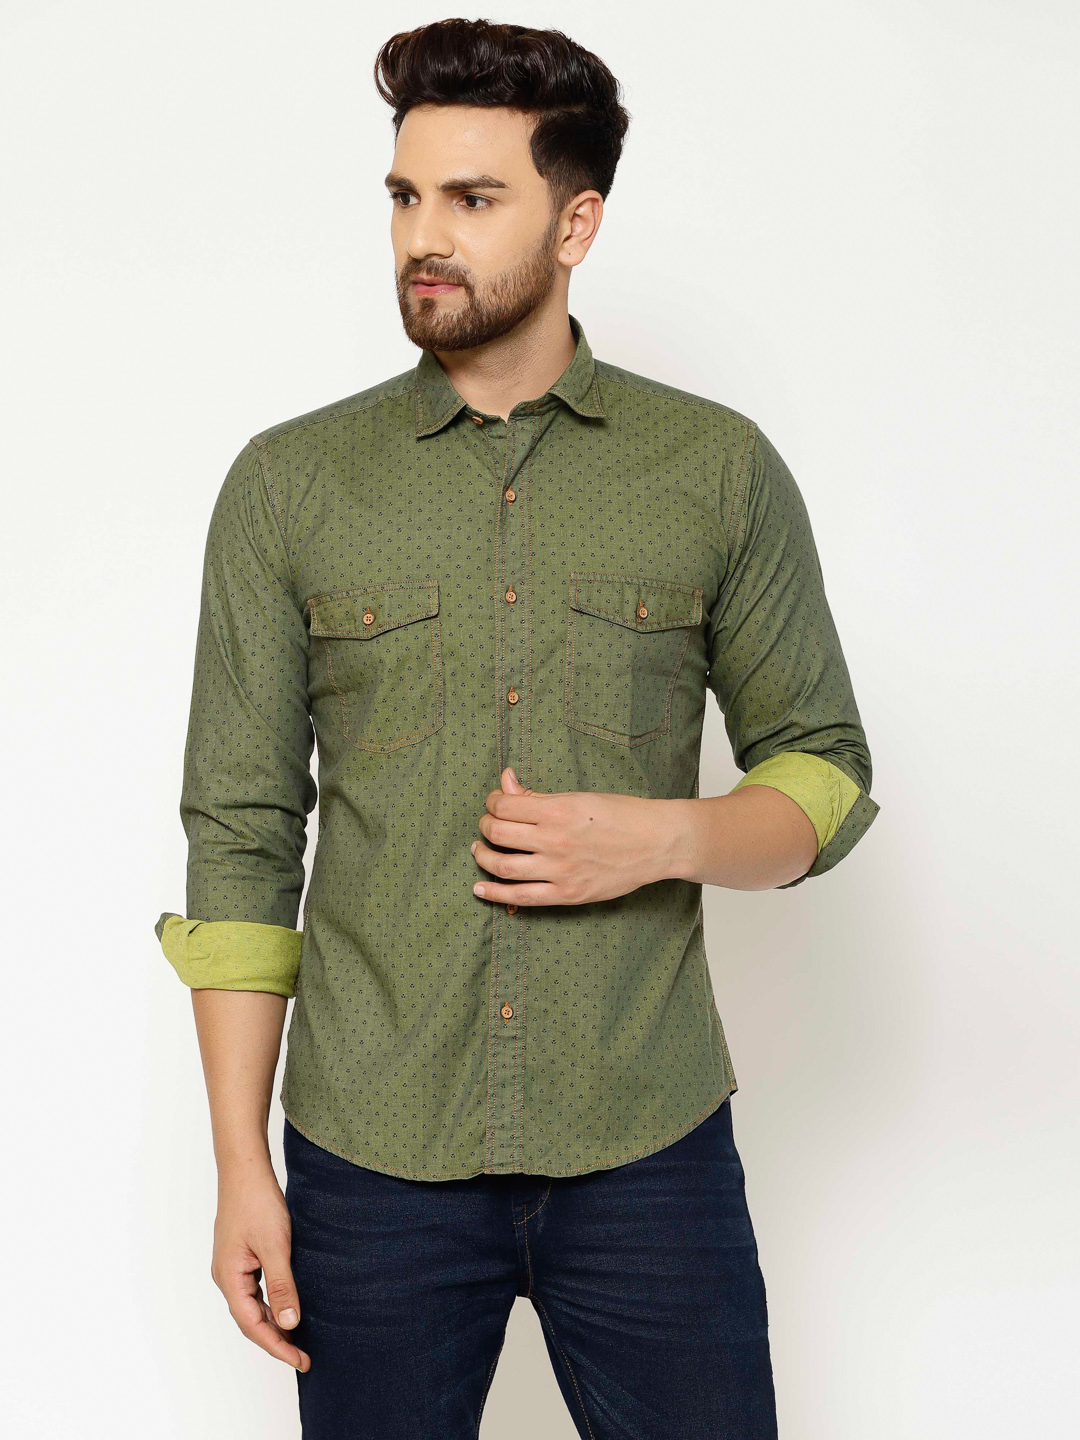 Eppe | EPPE Men's Printed Smart Fit Full Sleeves Cotton Denim Casual Shirt